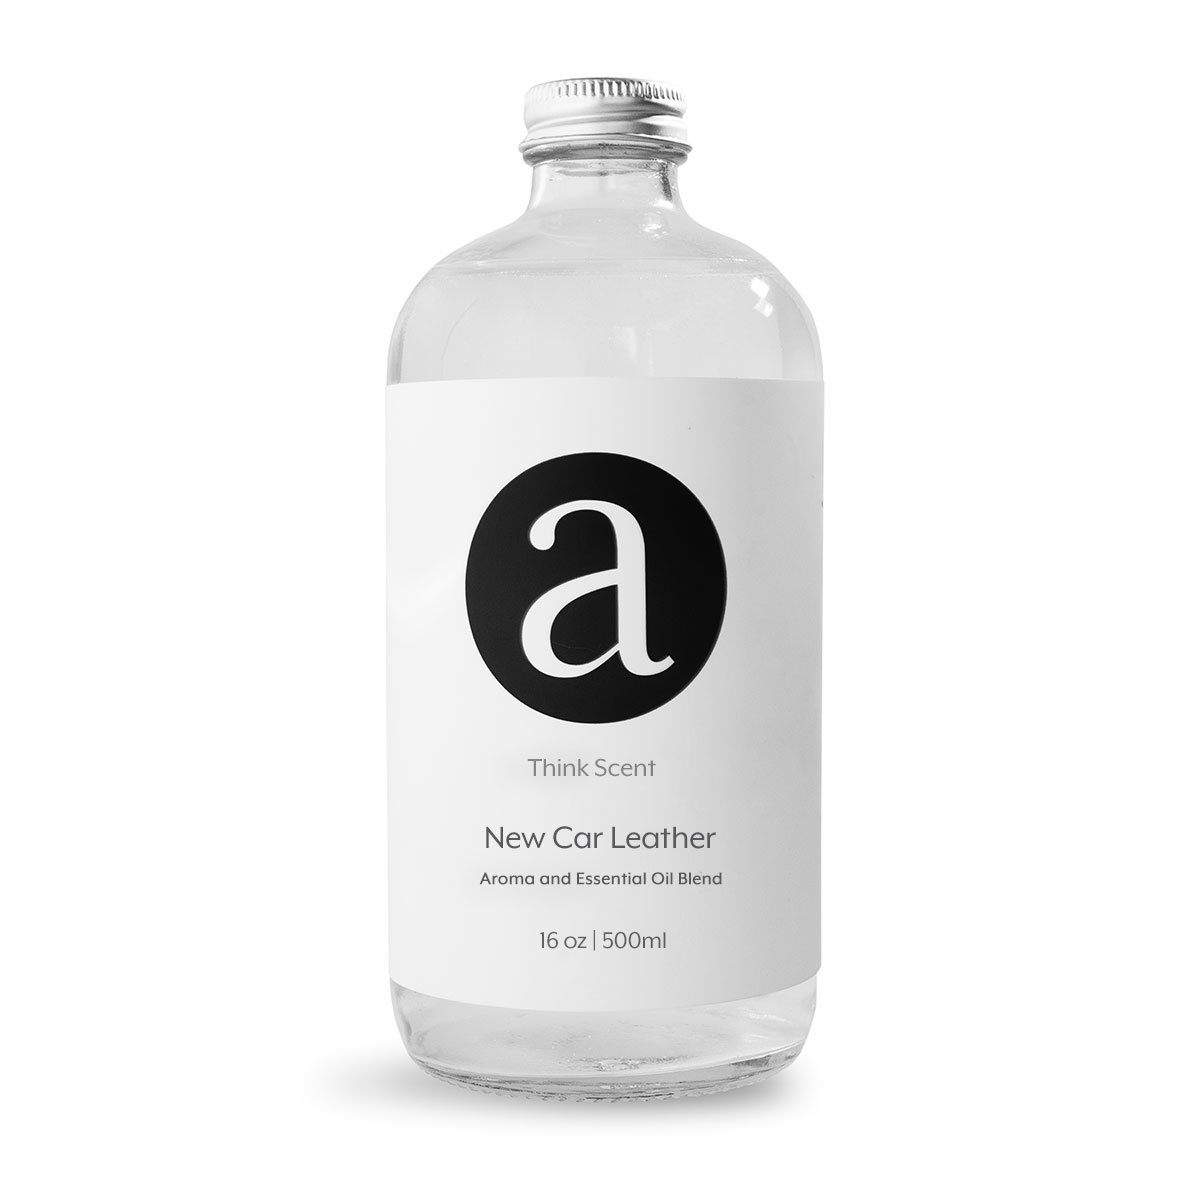 (New Car Leather) Aroma / Fragrance Oil For AromaTech Air Freshener Scent Diffuser (Half Gallon)